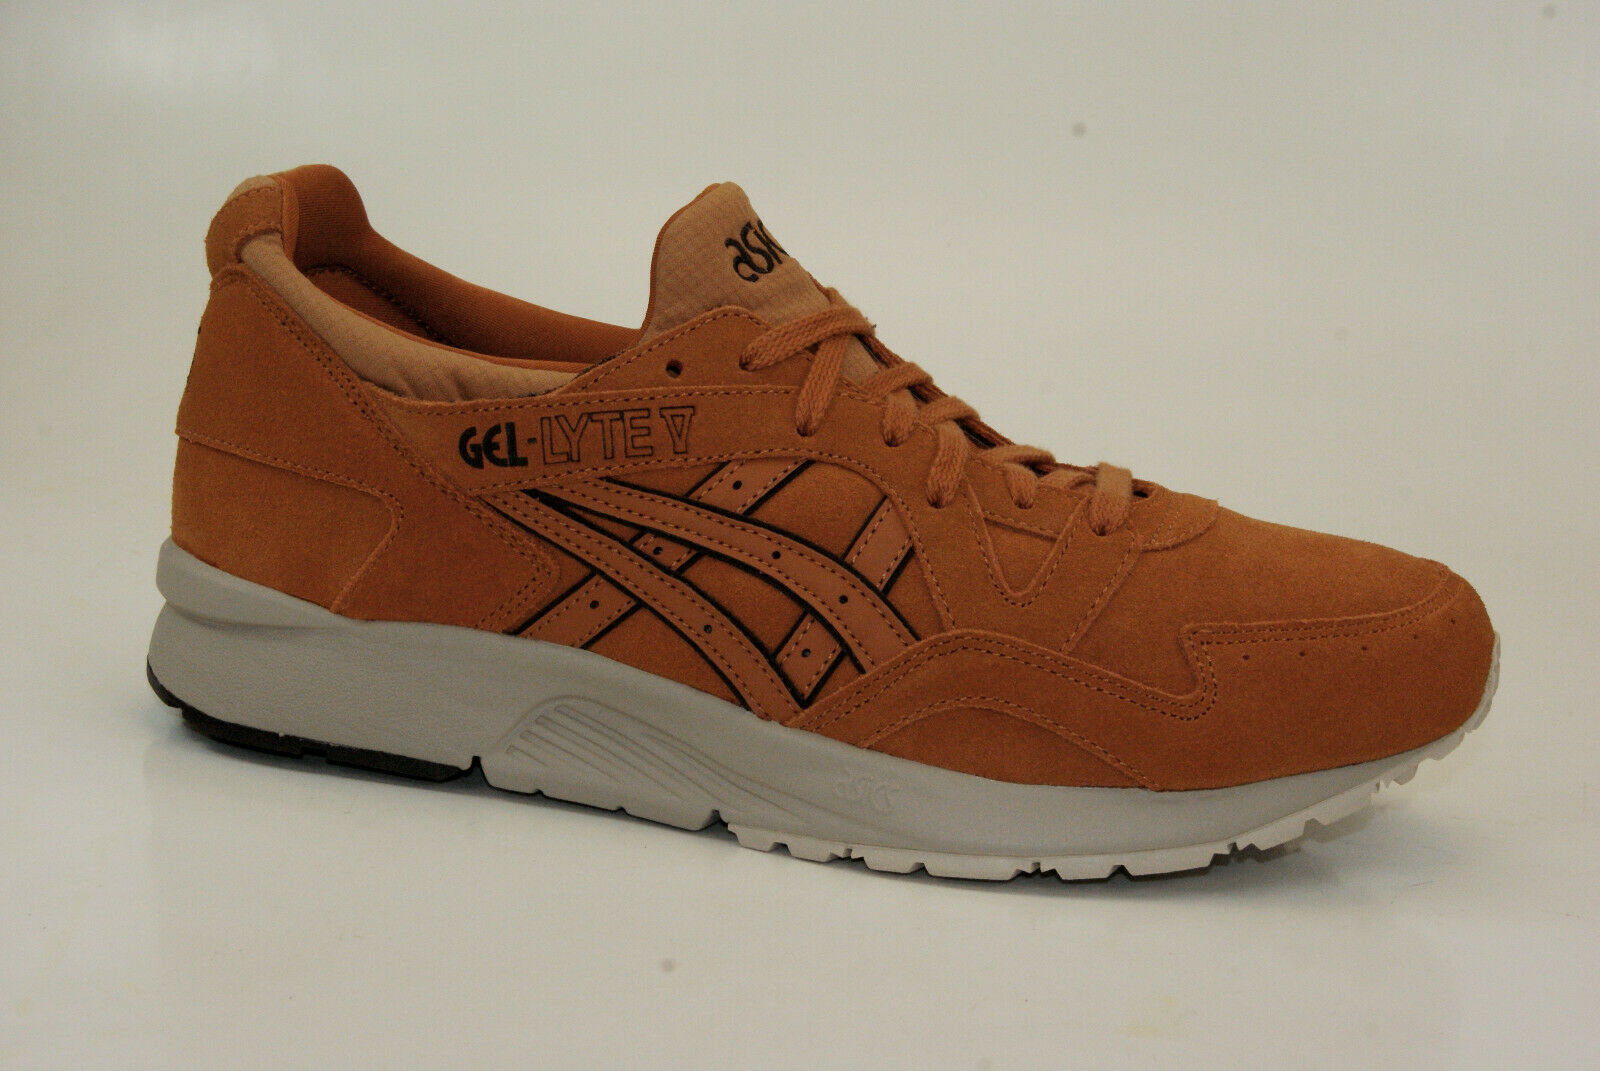 Asics Gel-Lyte V 5 shoes Trainers Casual shoes Hl7w1-3131